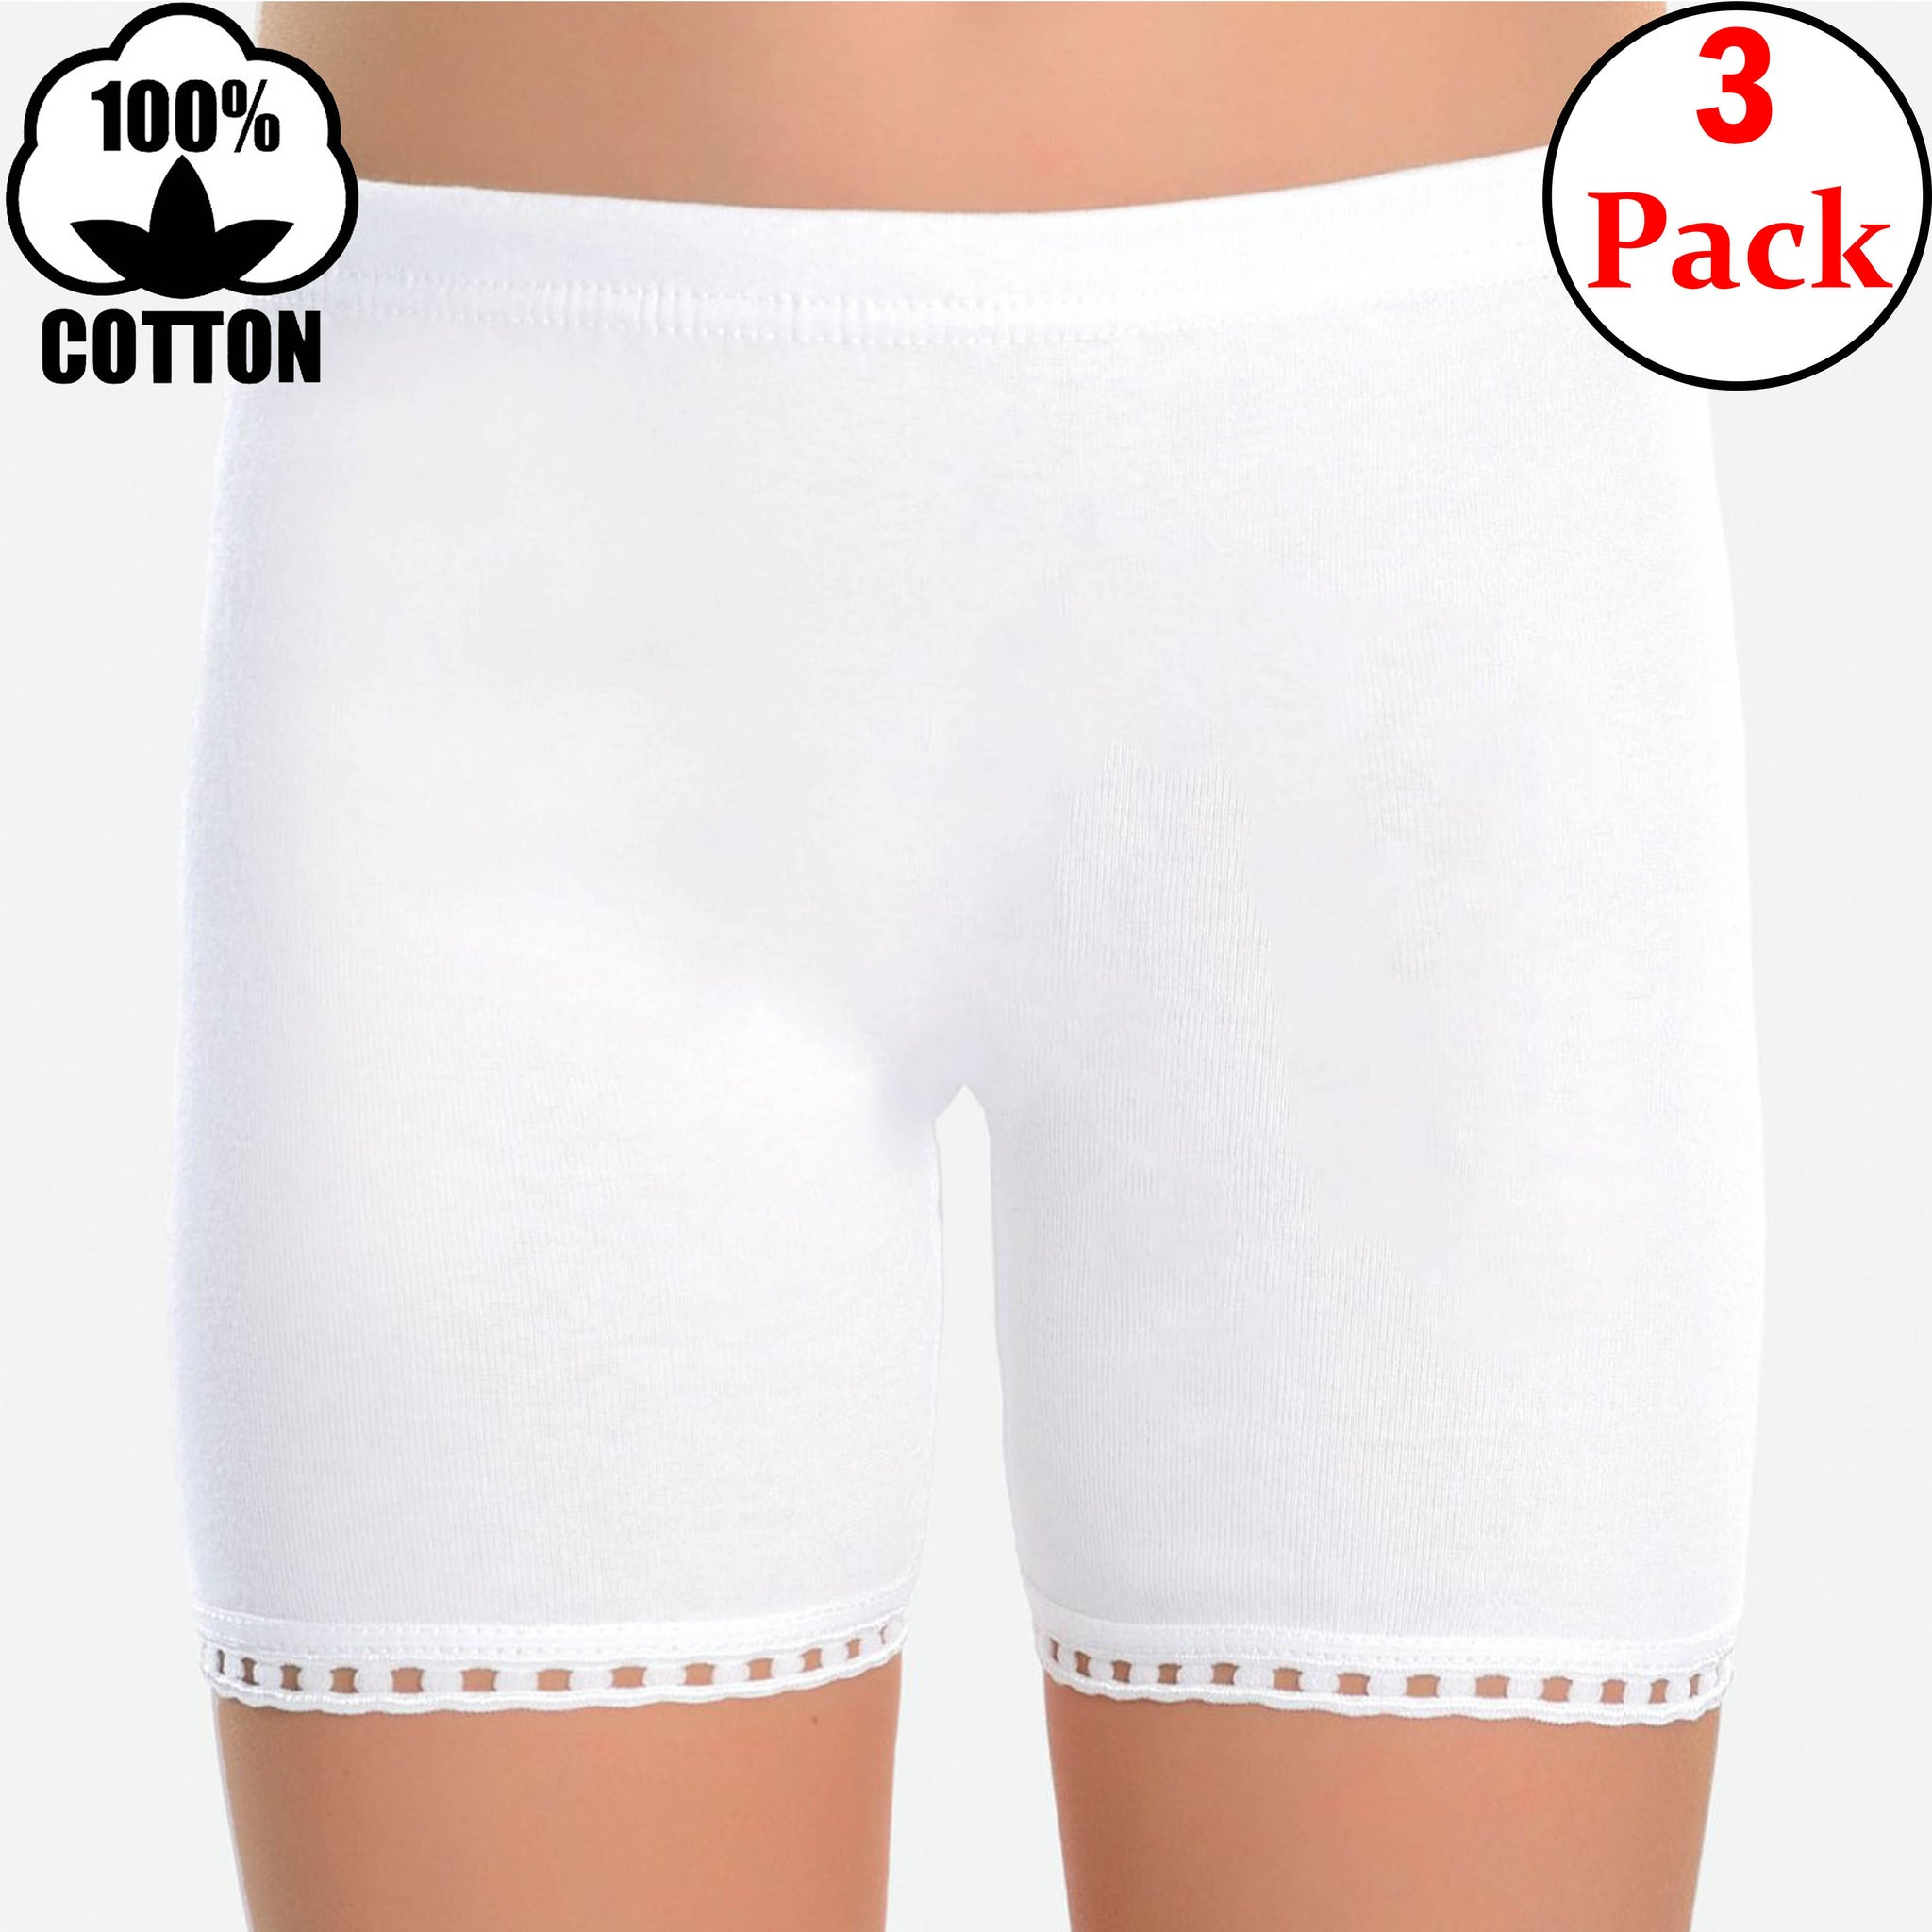 100% Cotton Rib Girls' Dantel Boxer Briefs